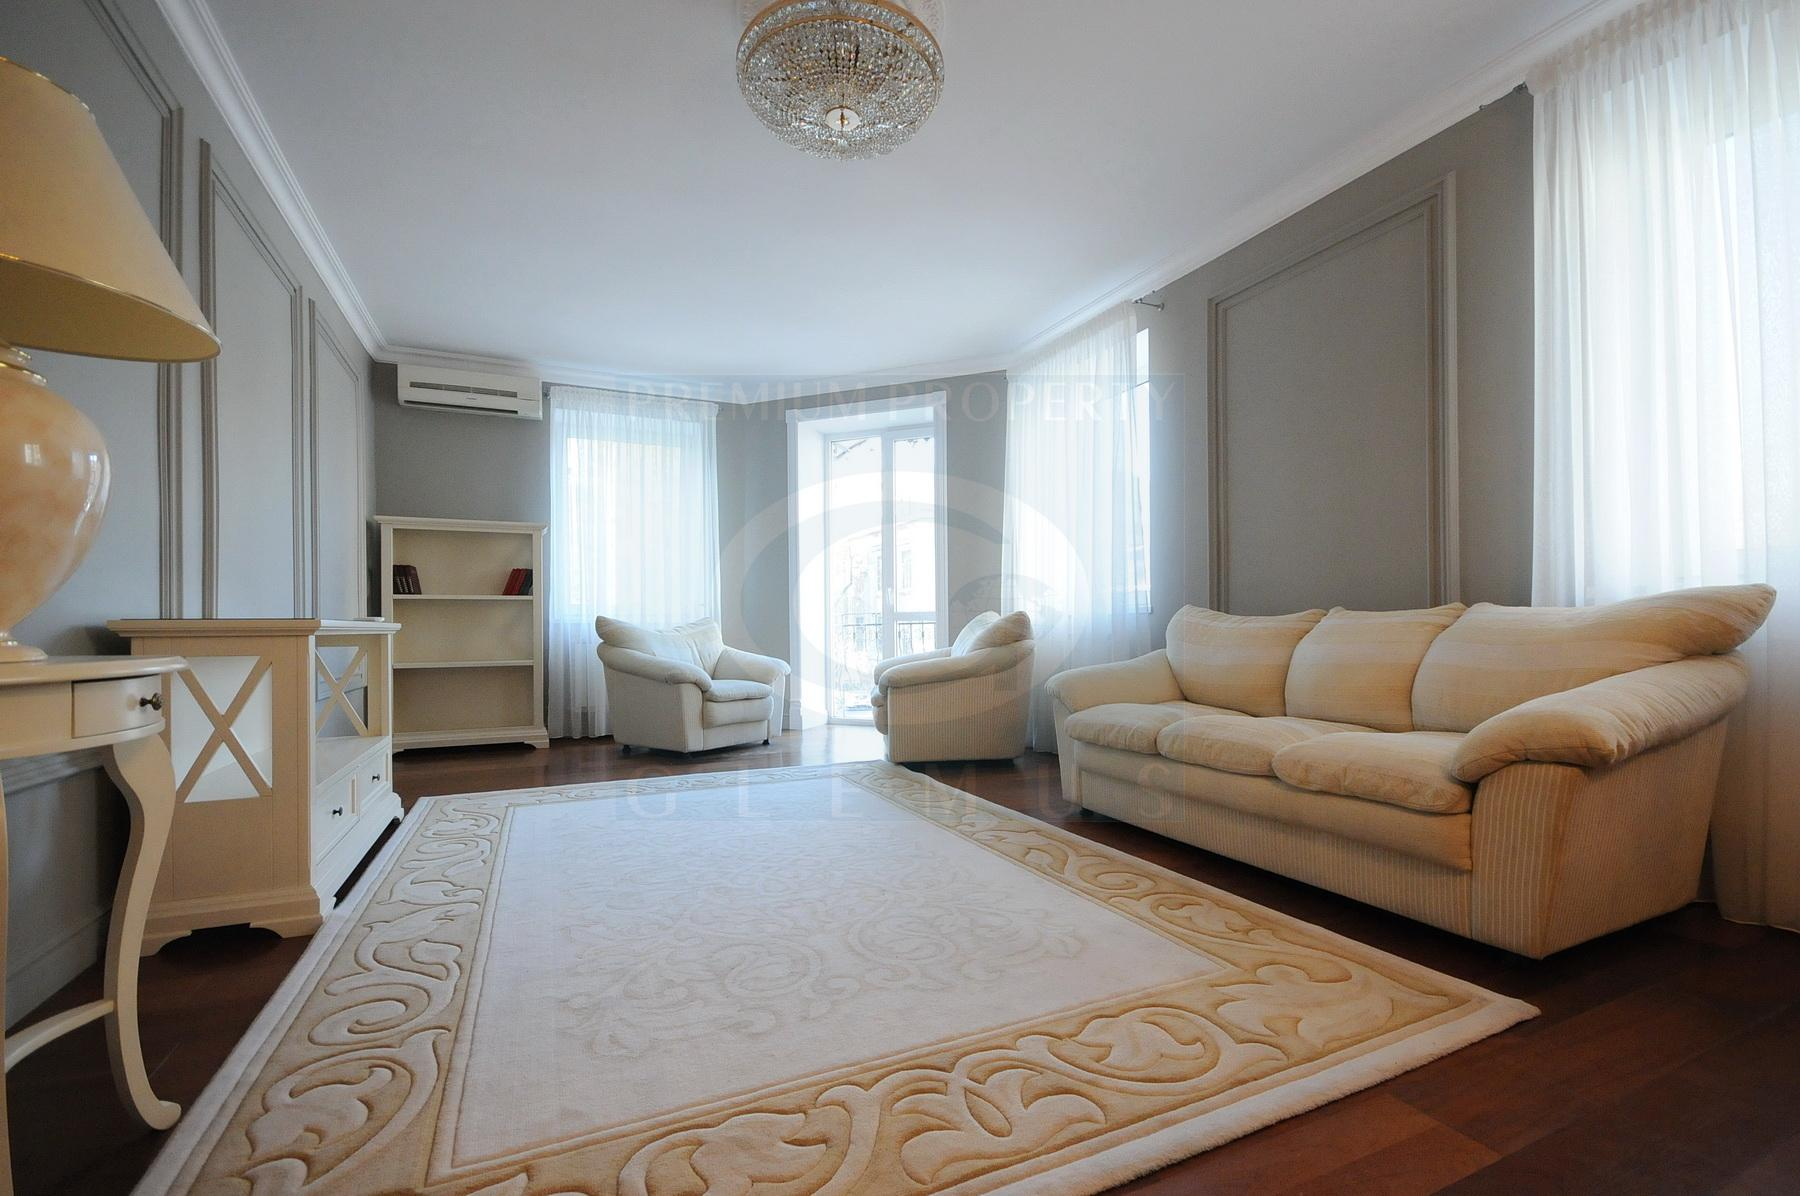 Stylish apartment with a view over the Eminescu Theater